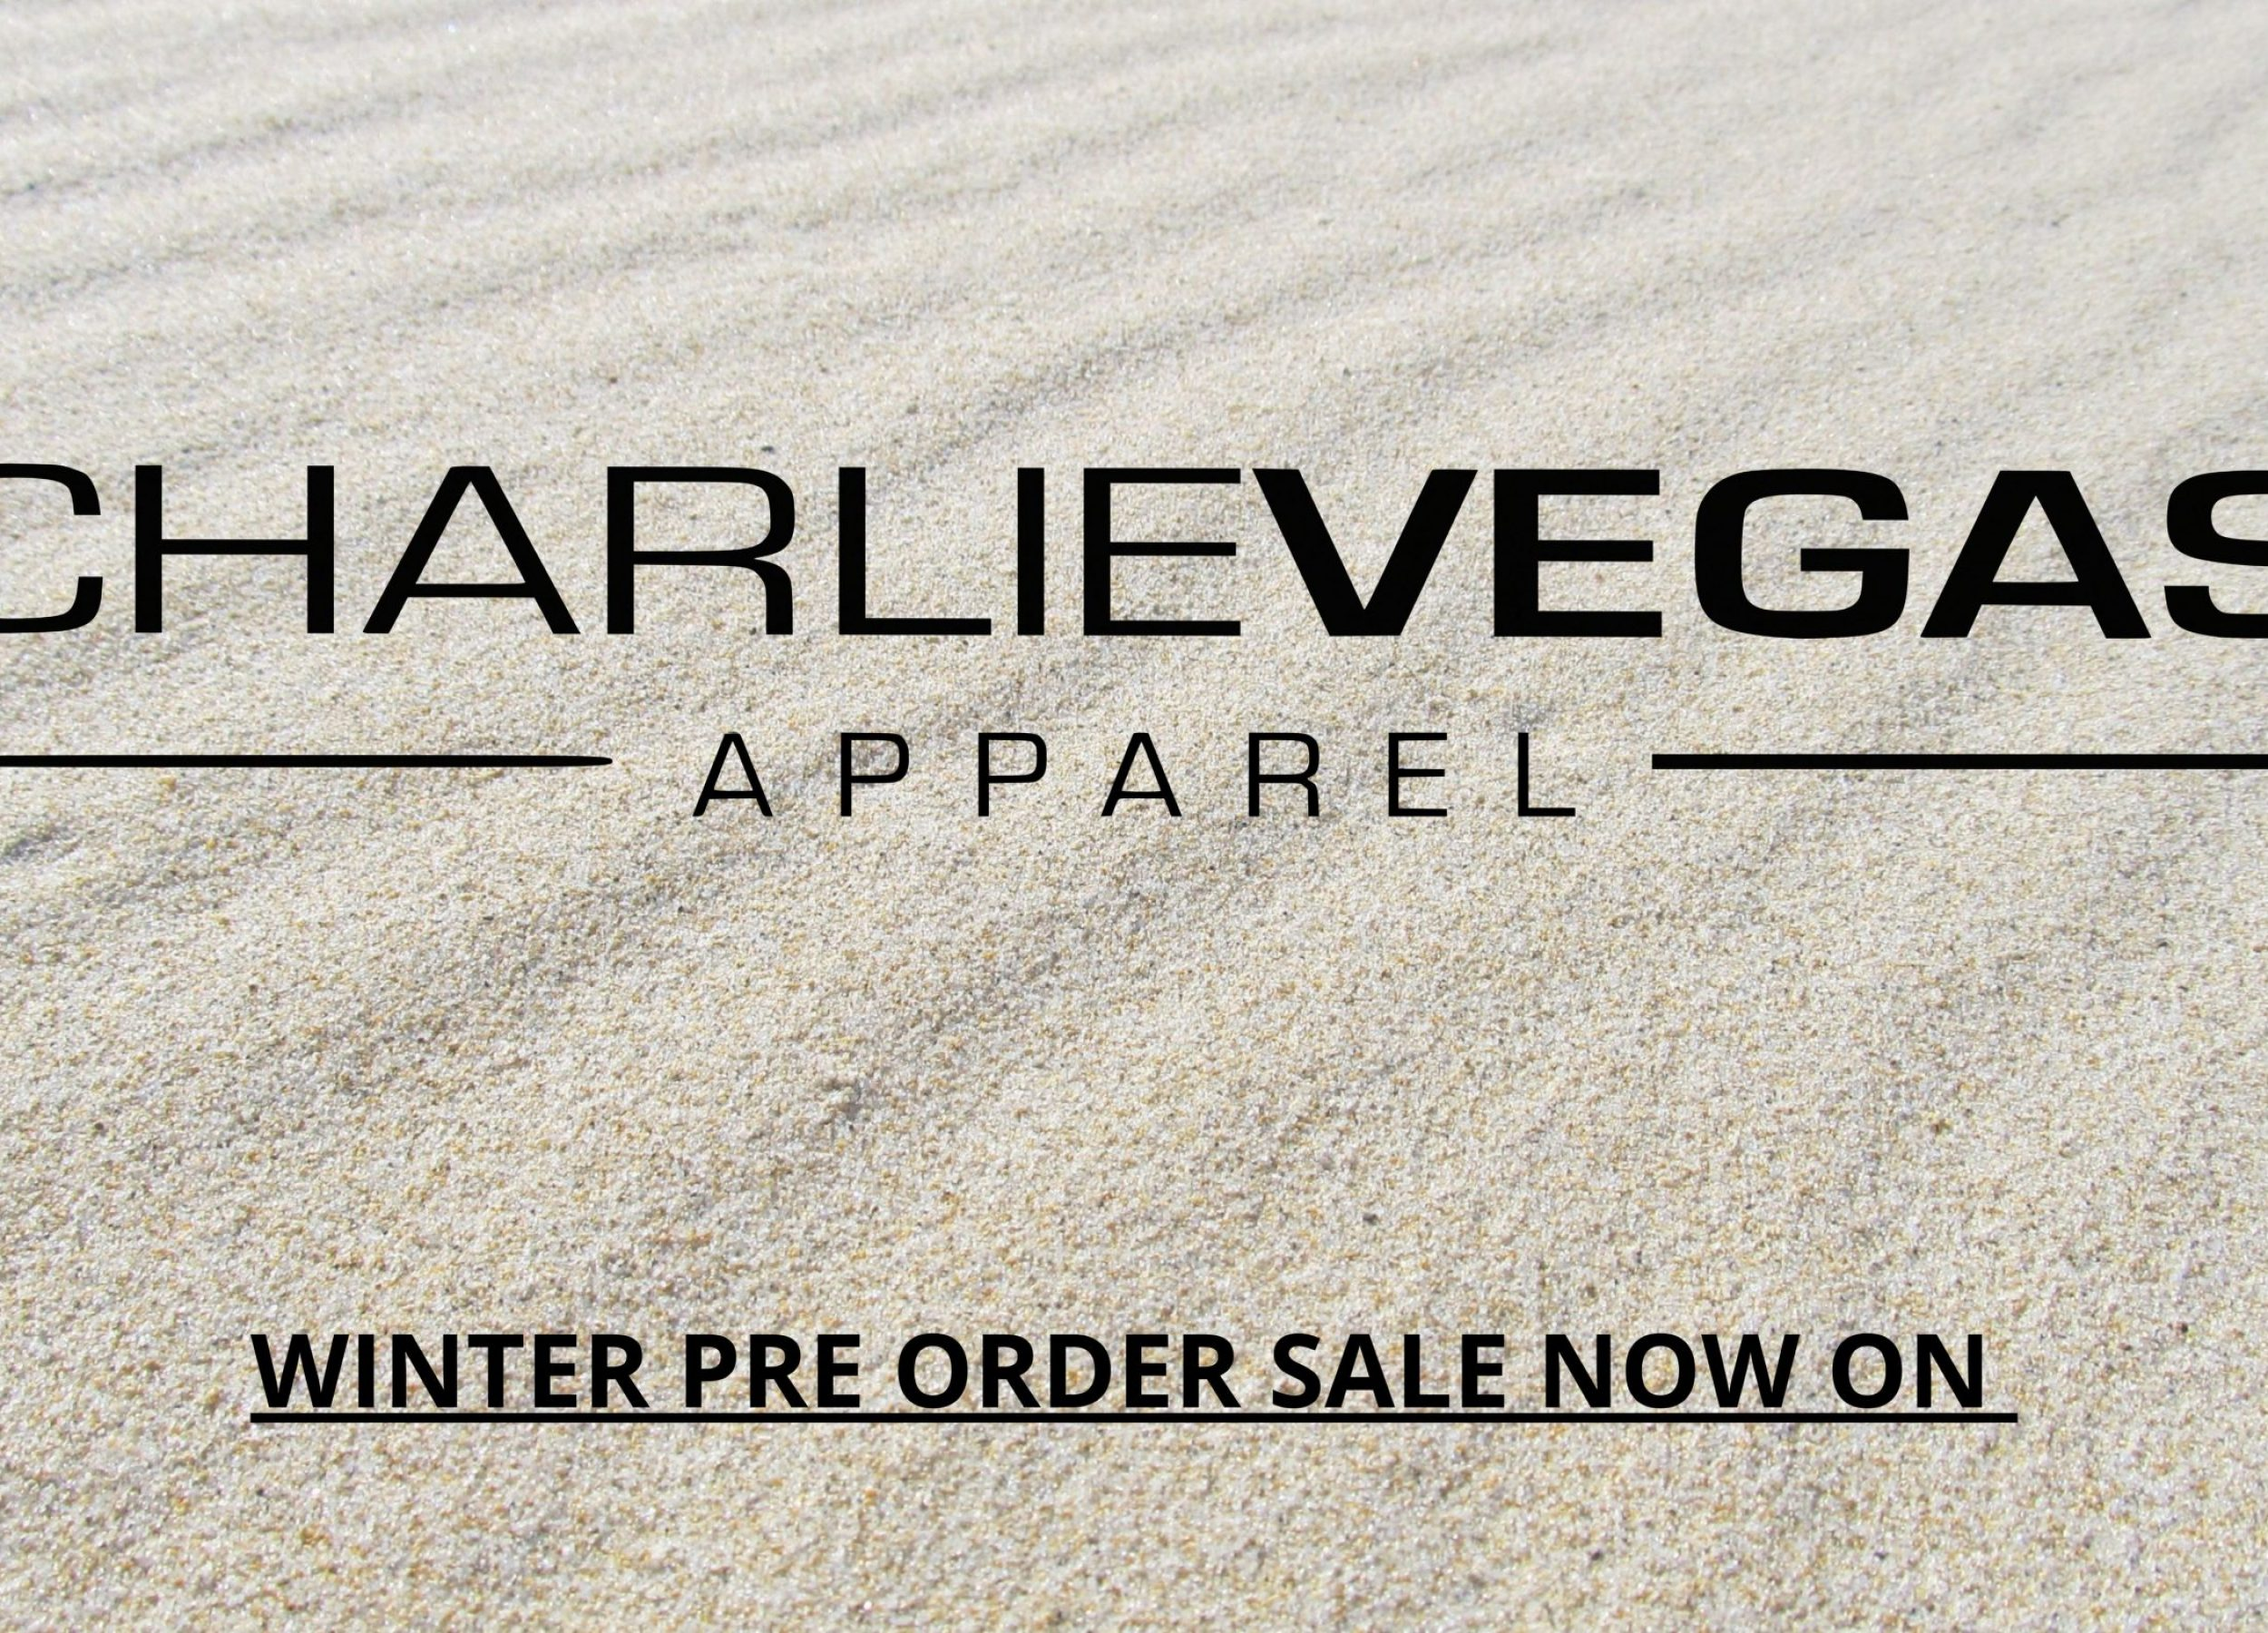 WINTER PRE ORDER SALE NOW ON